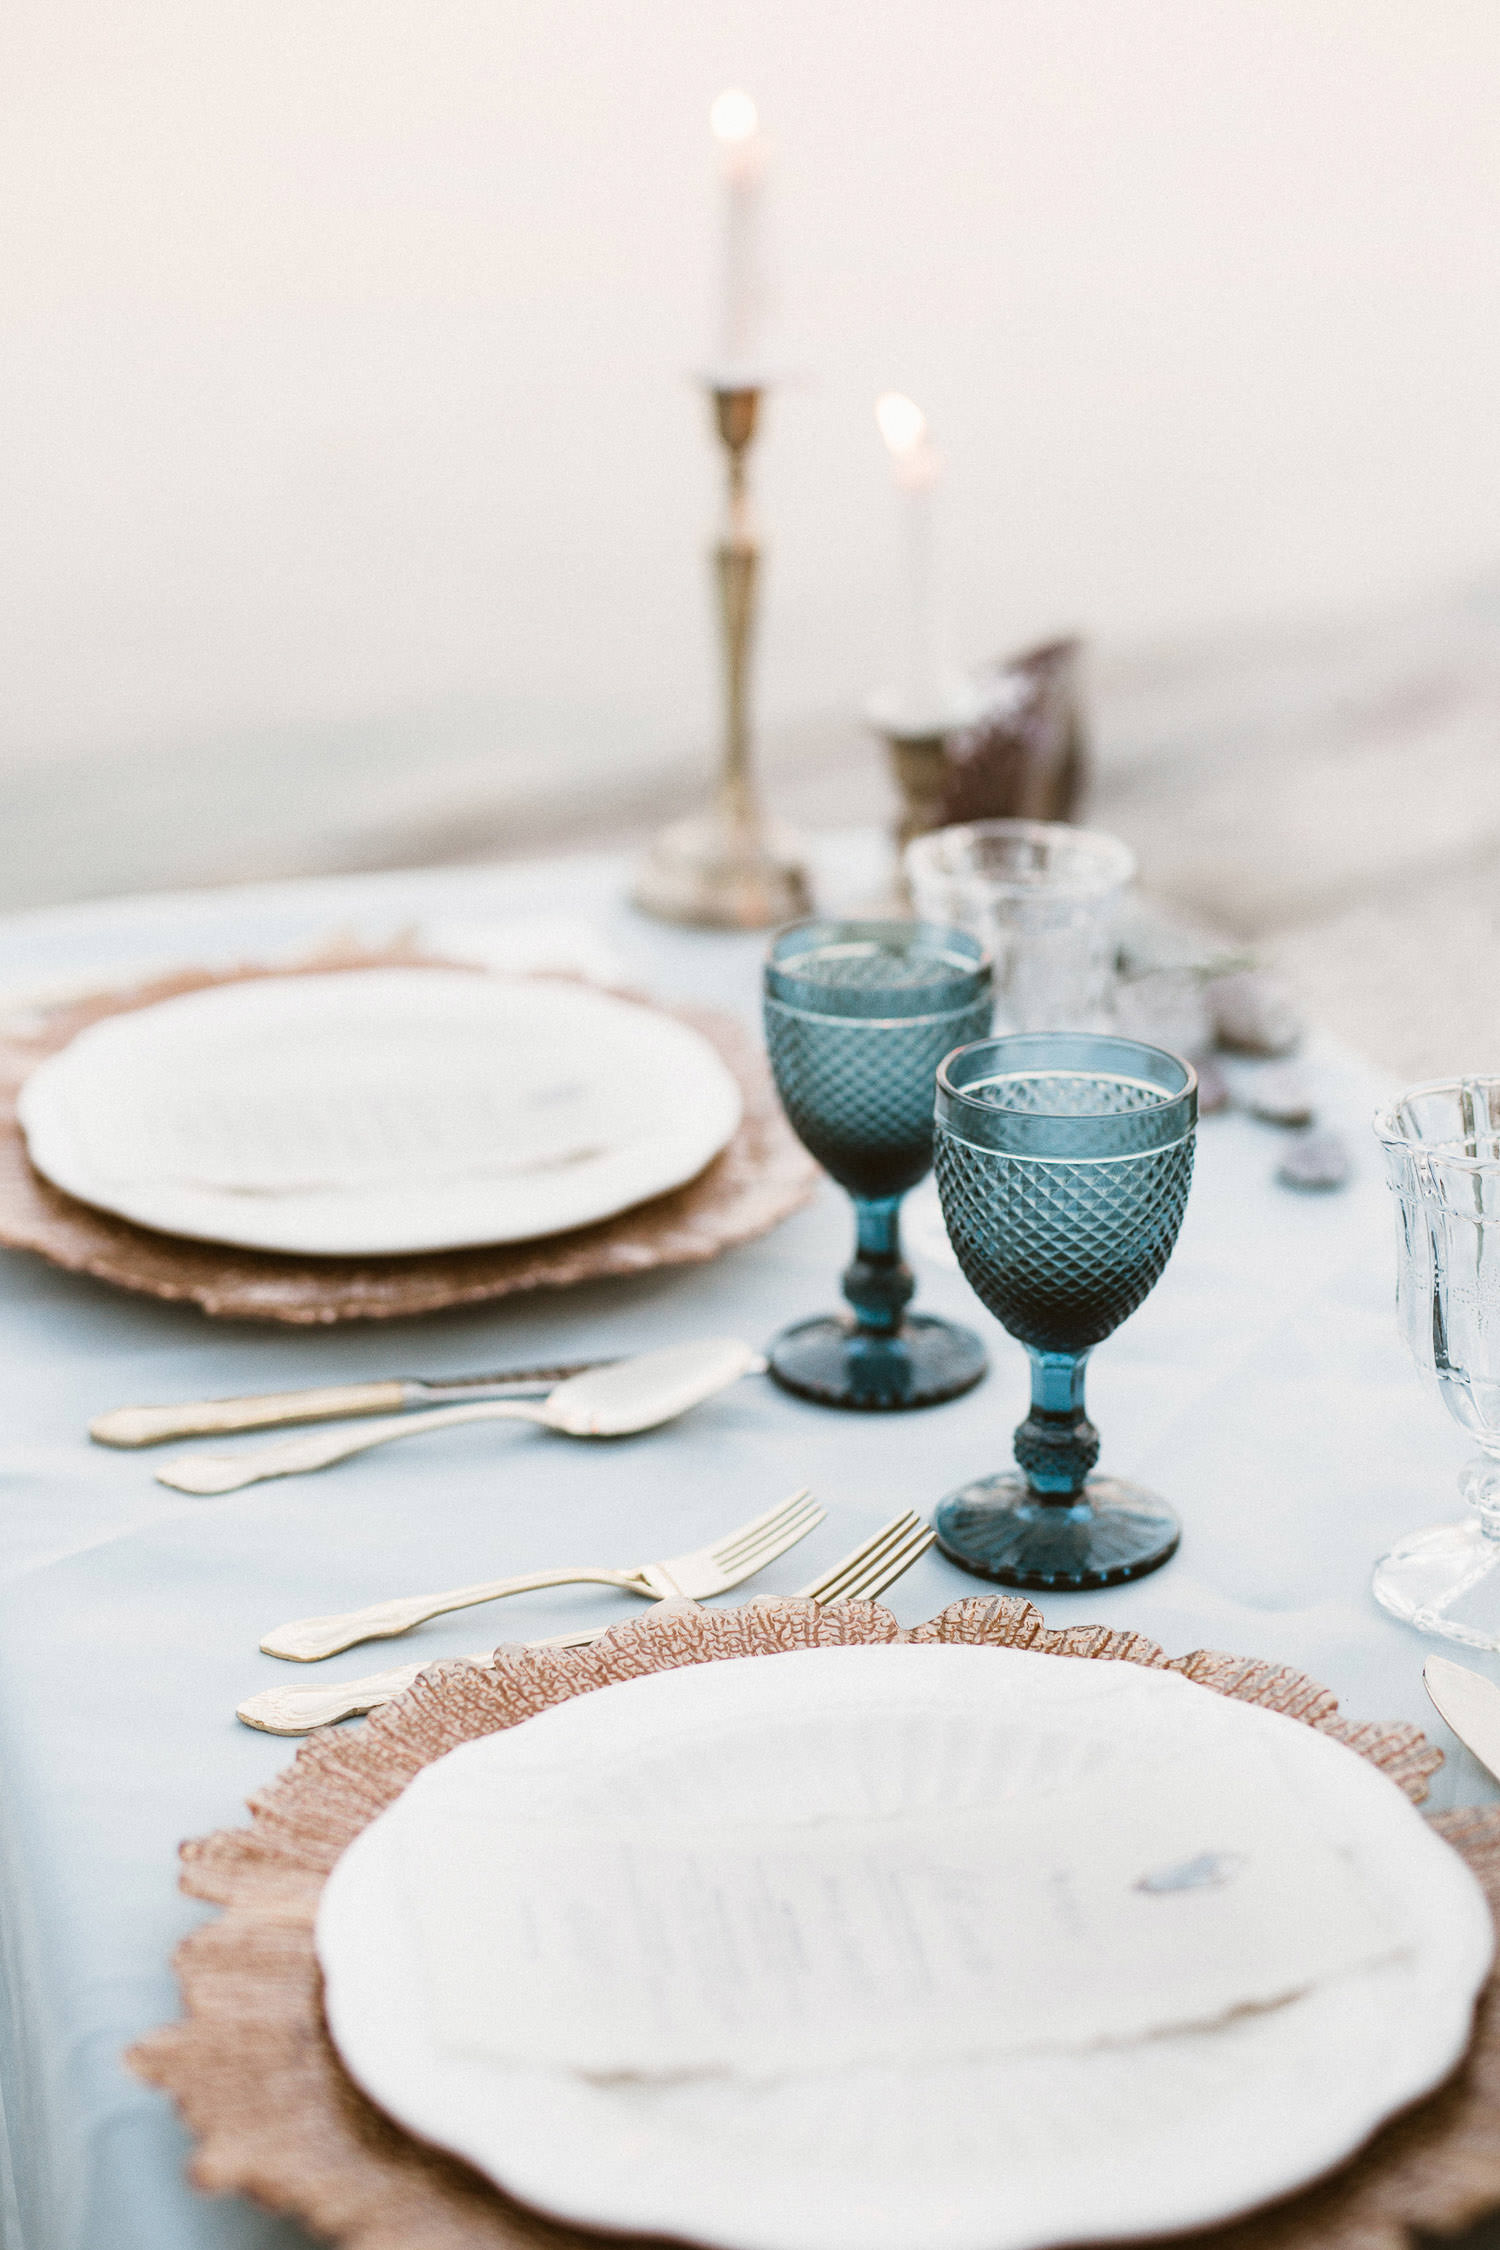 Refined and elegant table setting for a coastal wedding inspiration. Photo: Camilla Anchisi - Italy wedding photographer